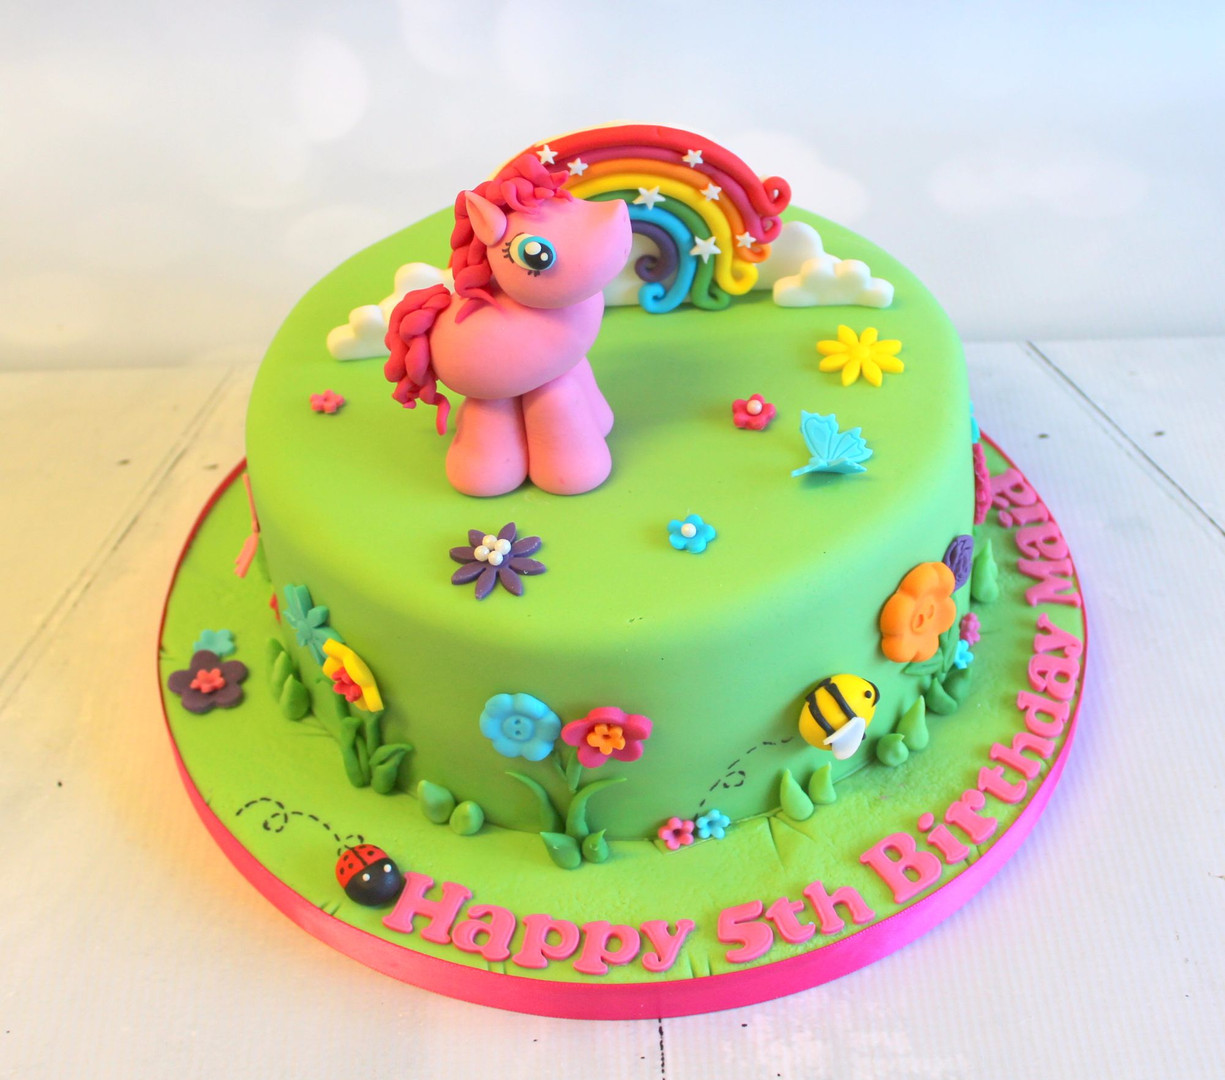 Unicorn Figure Cake with Rainbow